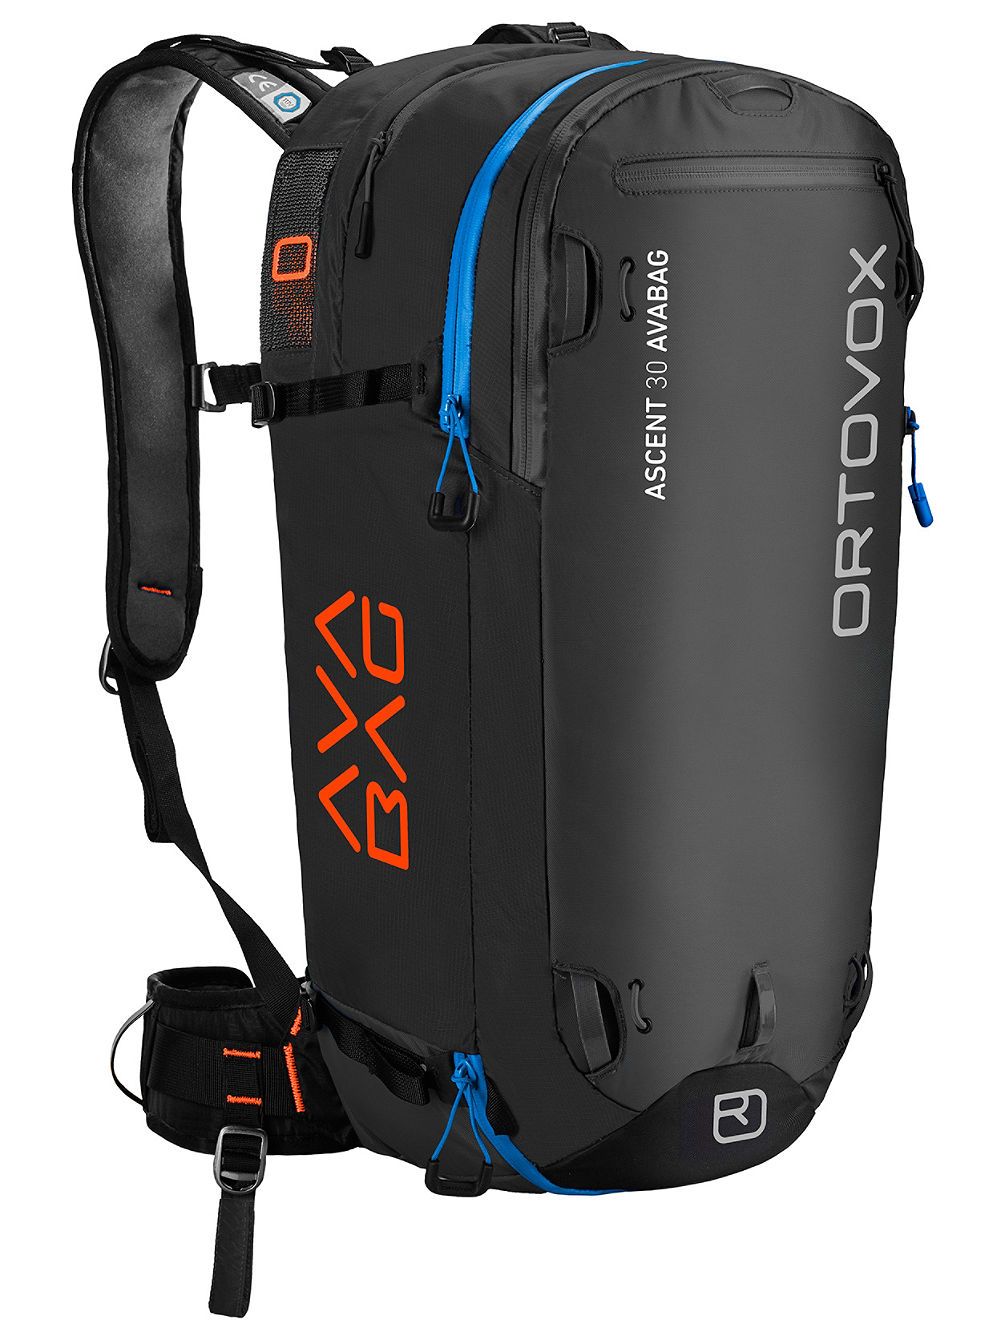 Ascent 30L Avabag Without AVABAG Unit